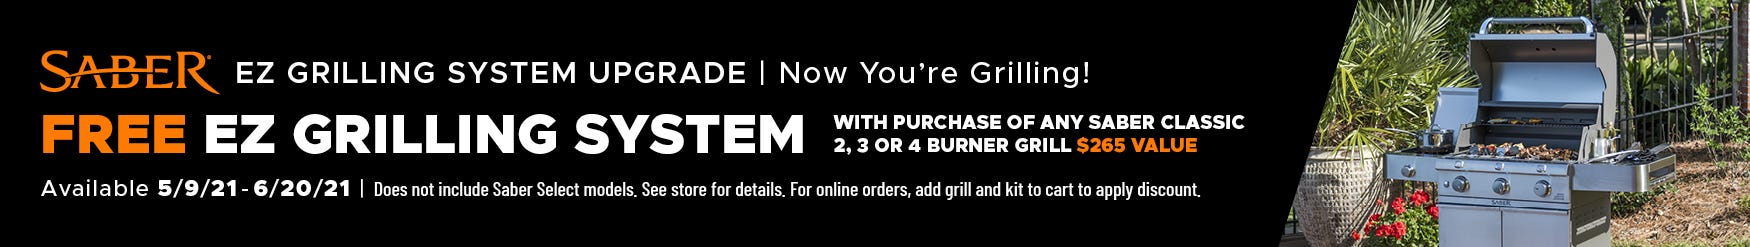 Limited Time Only Offer. EZ Grilling System Upgrade. Free EZ Grilling System with the purchase of an SABER Classic 2, 3 or 4 burner grill. Offer expires 6/20/21.